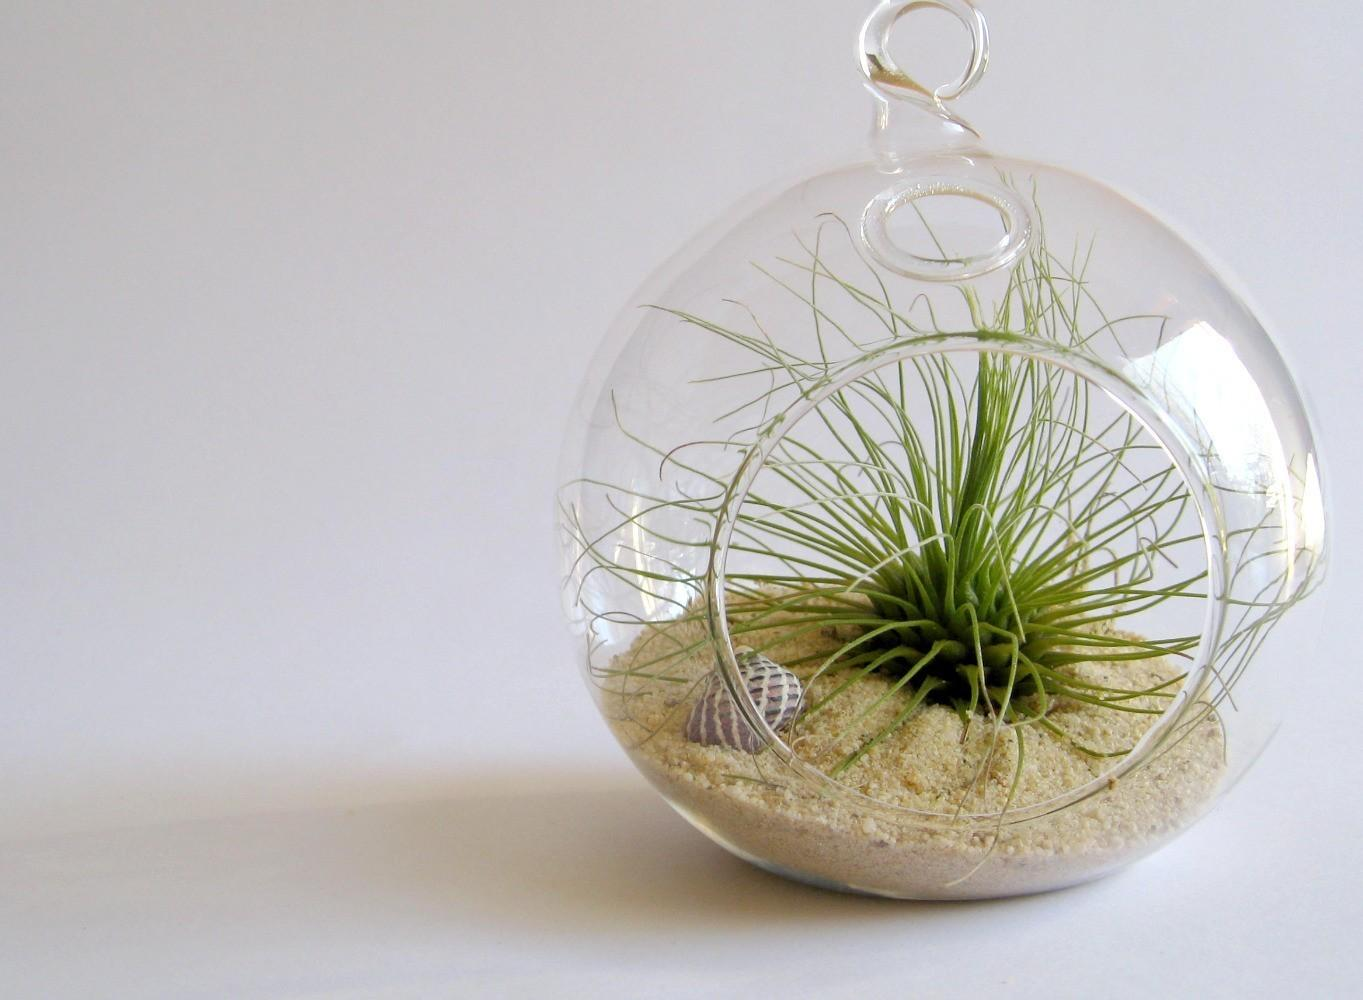 Surf bubble terrarium kit by terradctl by terradctl on Etsy